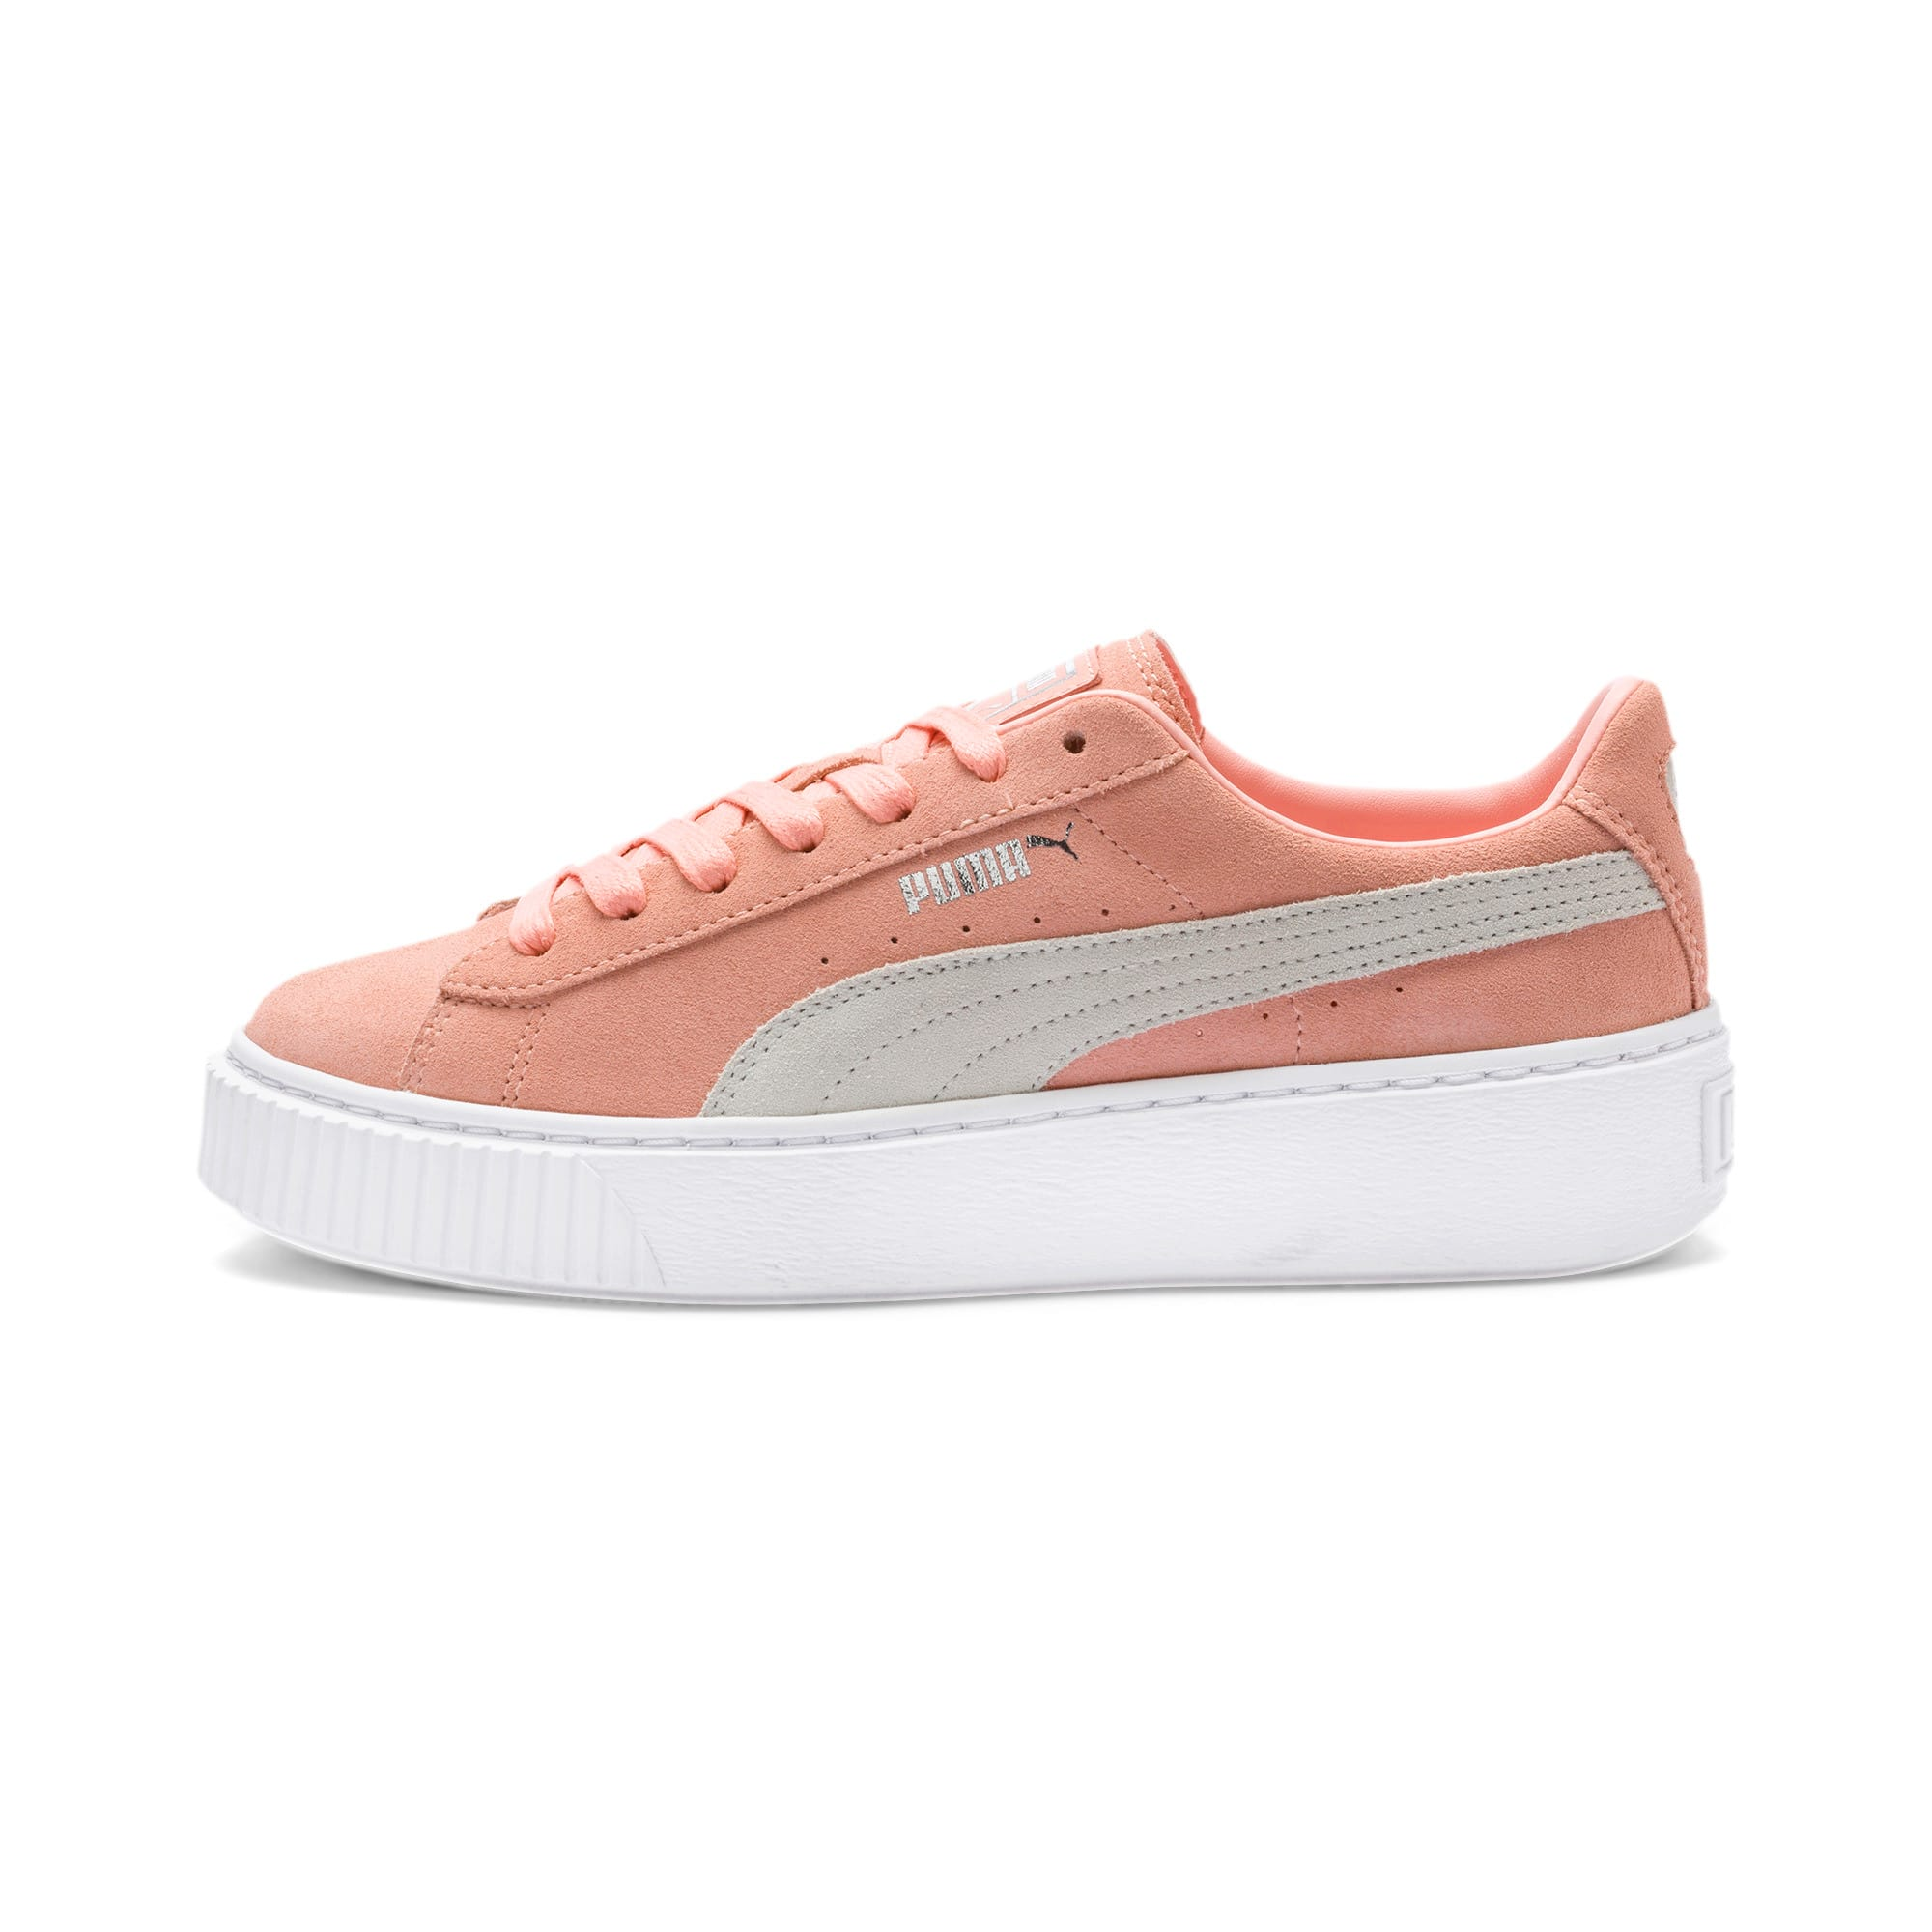 Thumbnail 1 of Suede Platform Women's Sneakers, Peach Bud-Puma Silver, medium